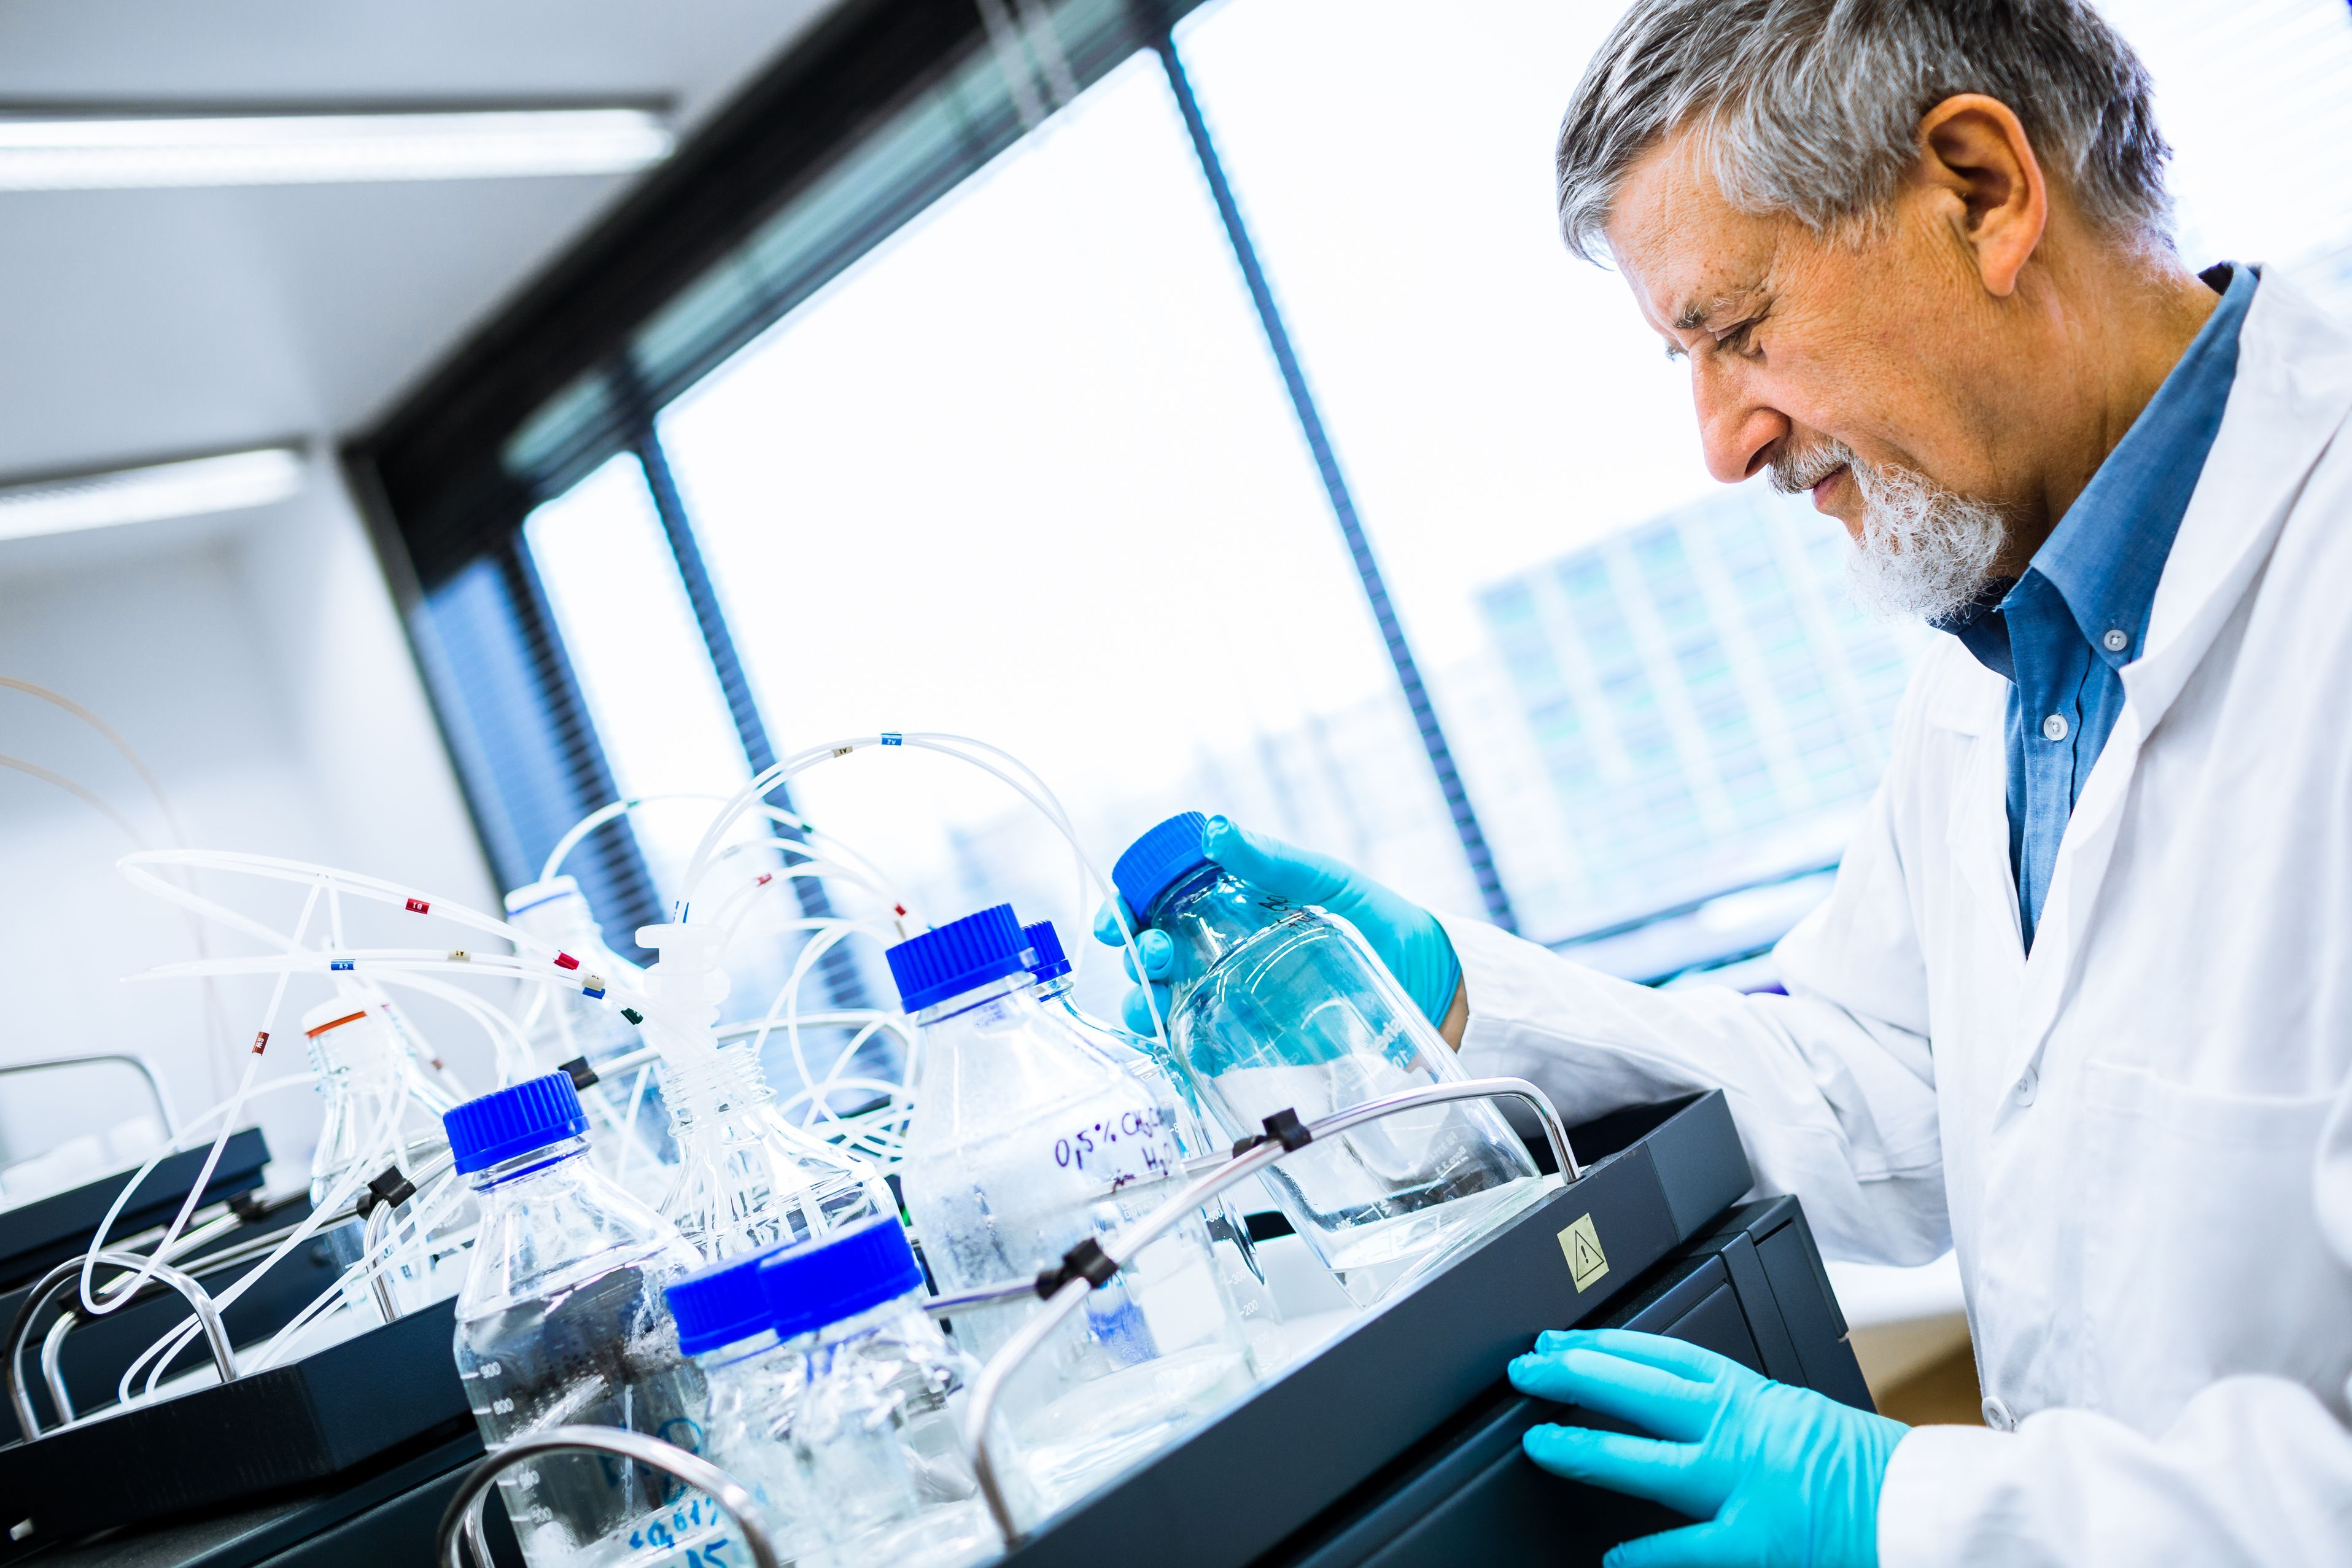 buy research chemicals online from china